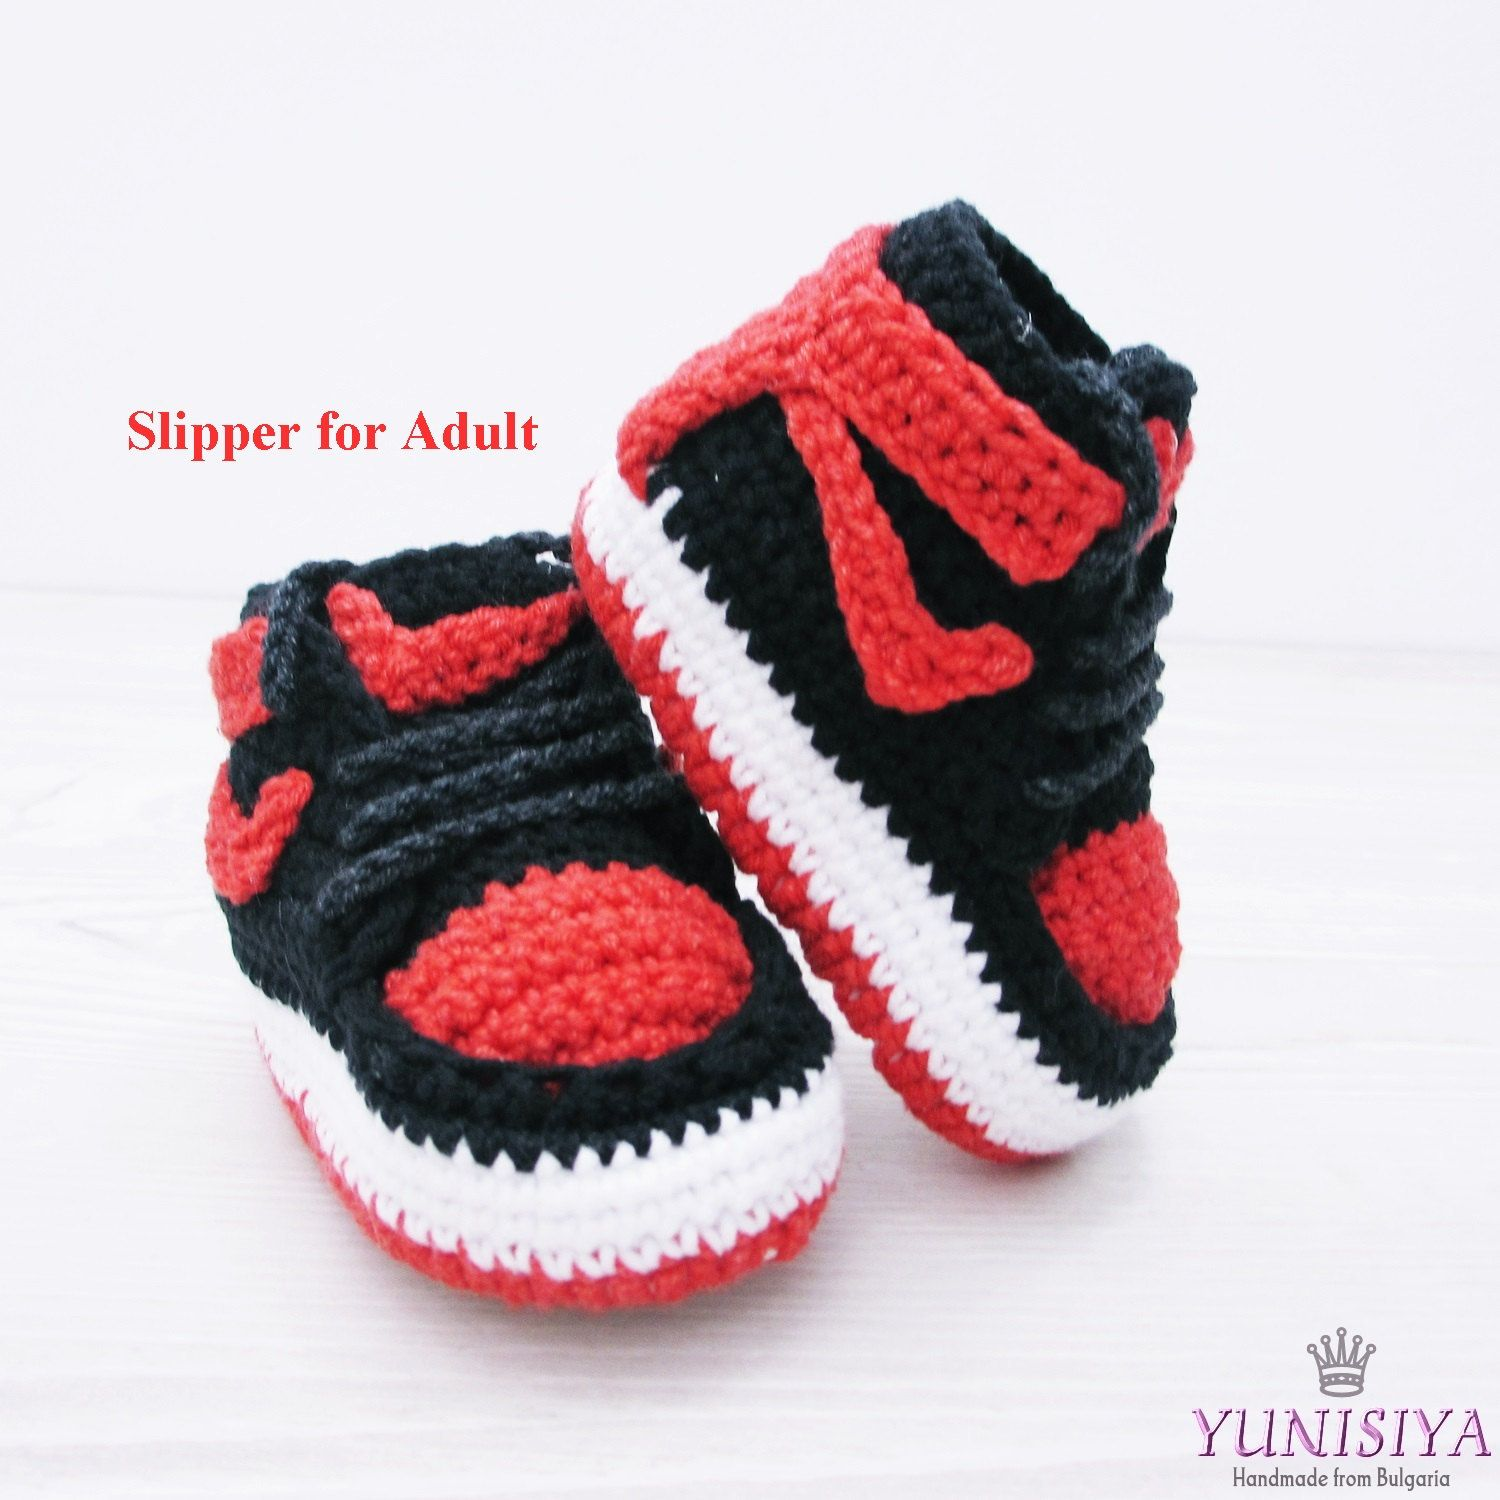 Crocheted slippers Nike Air jordan Knitted shoes Slippers Men's Slippers  Air Jordan 1 Women's Slippers adult